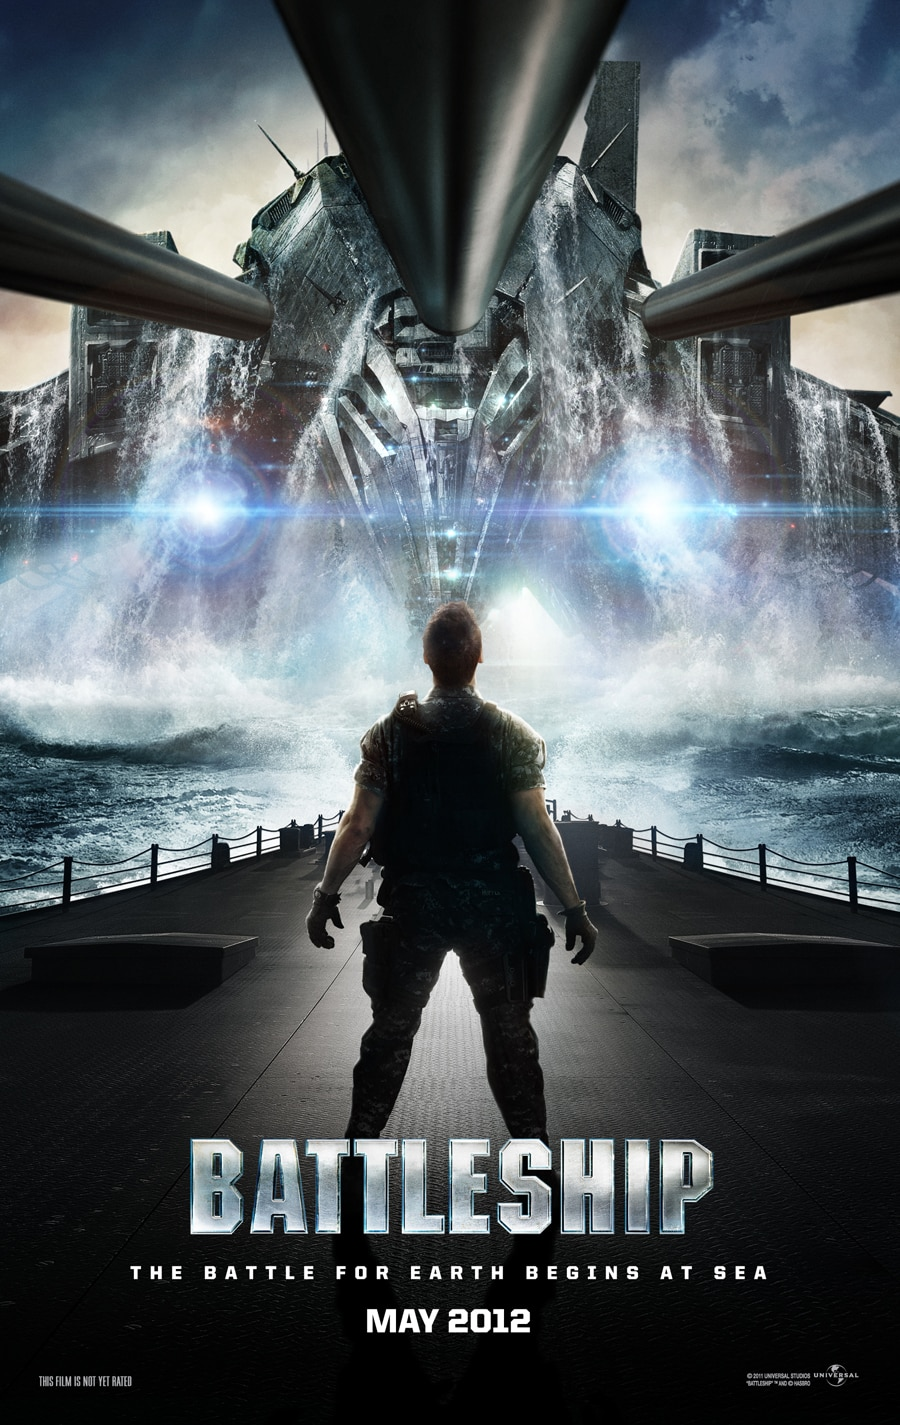 Battleship: Full Image Gallery Now Online